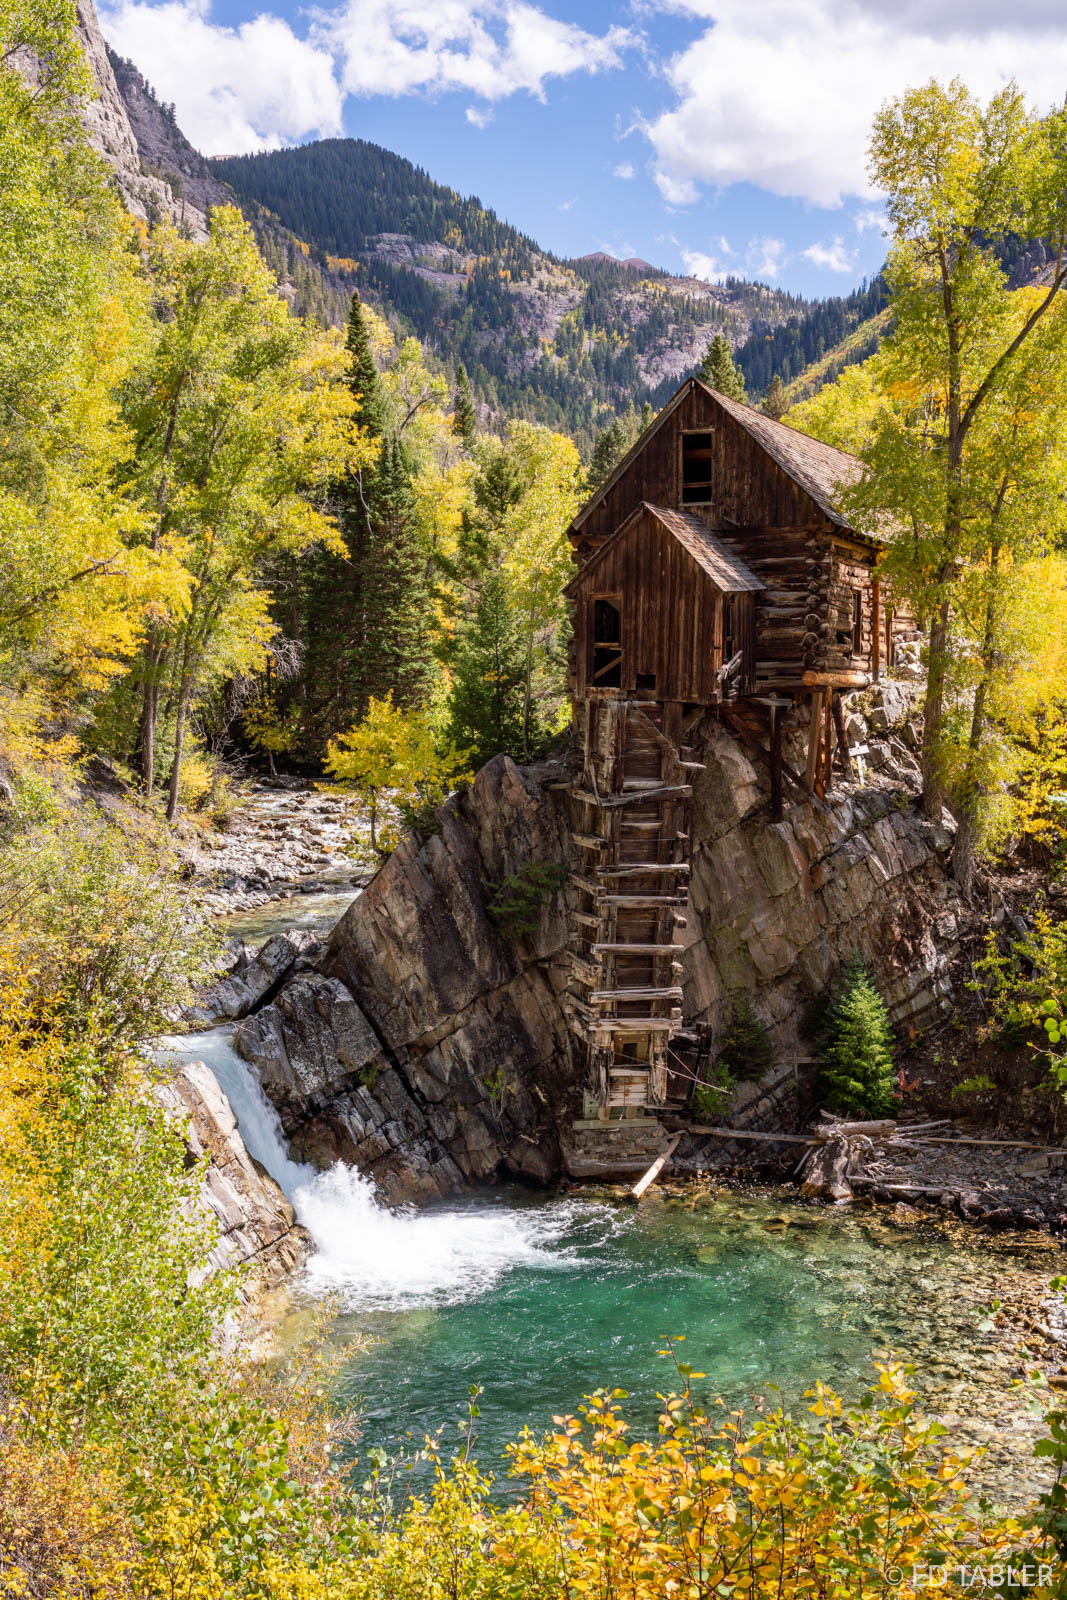 Crystal Mill, or the Old Mill, is an 1892 wooden powerhouse located on an outcrop above the Crystal River near Crystal, Colorado...